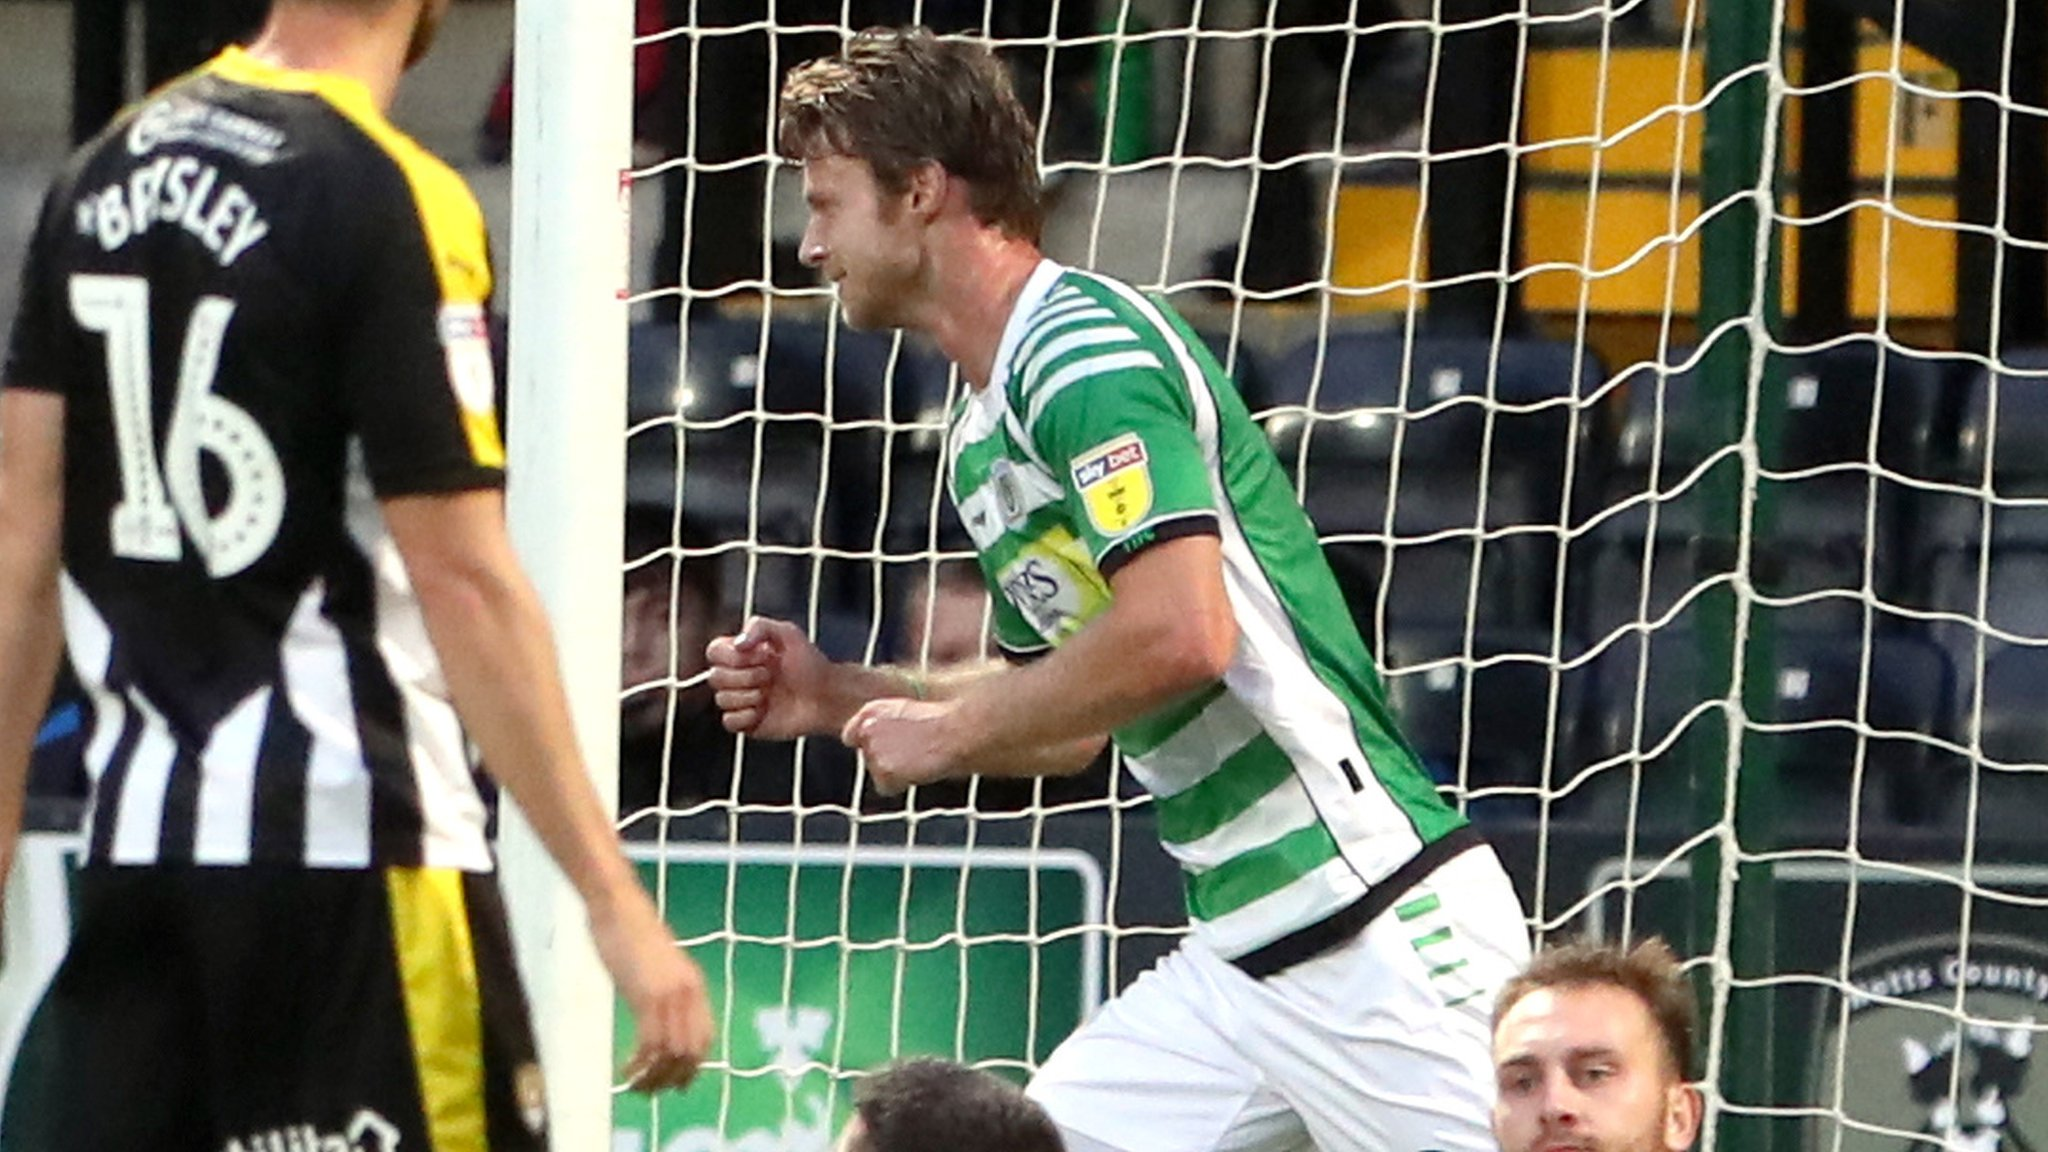 Notts County 0-4 Yeovil Town